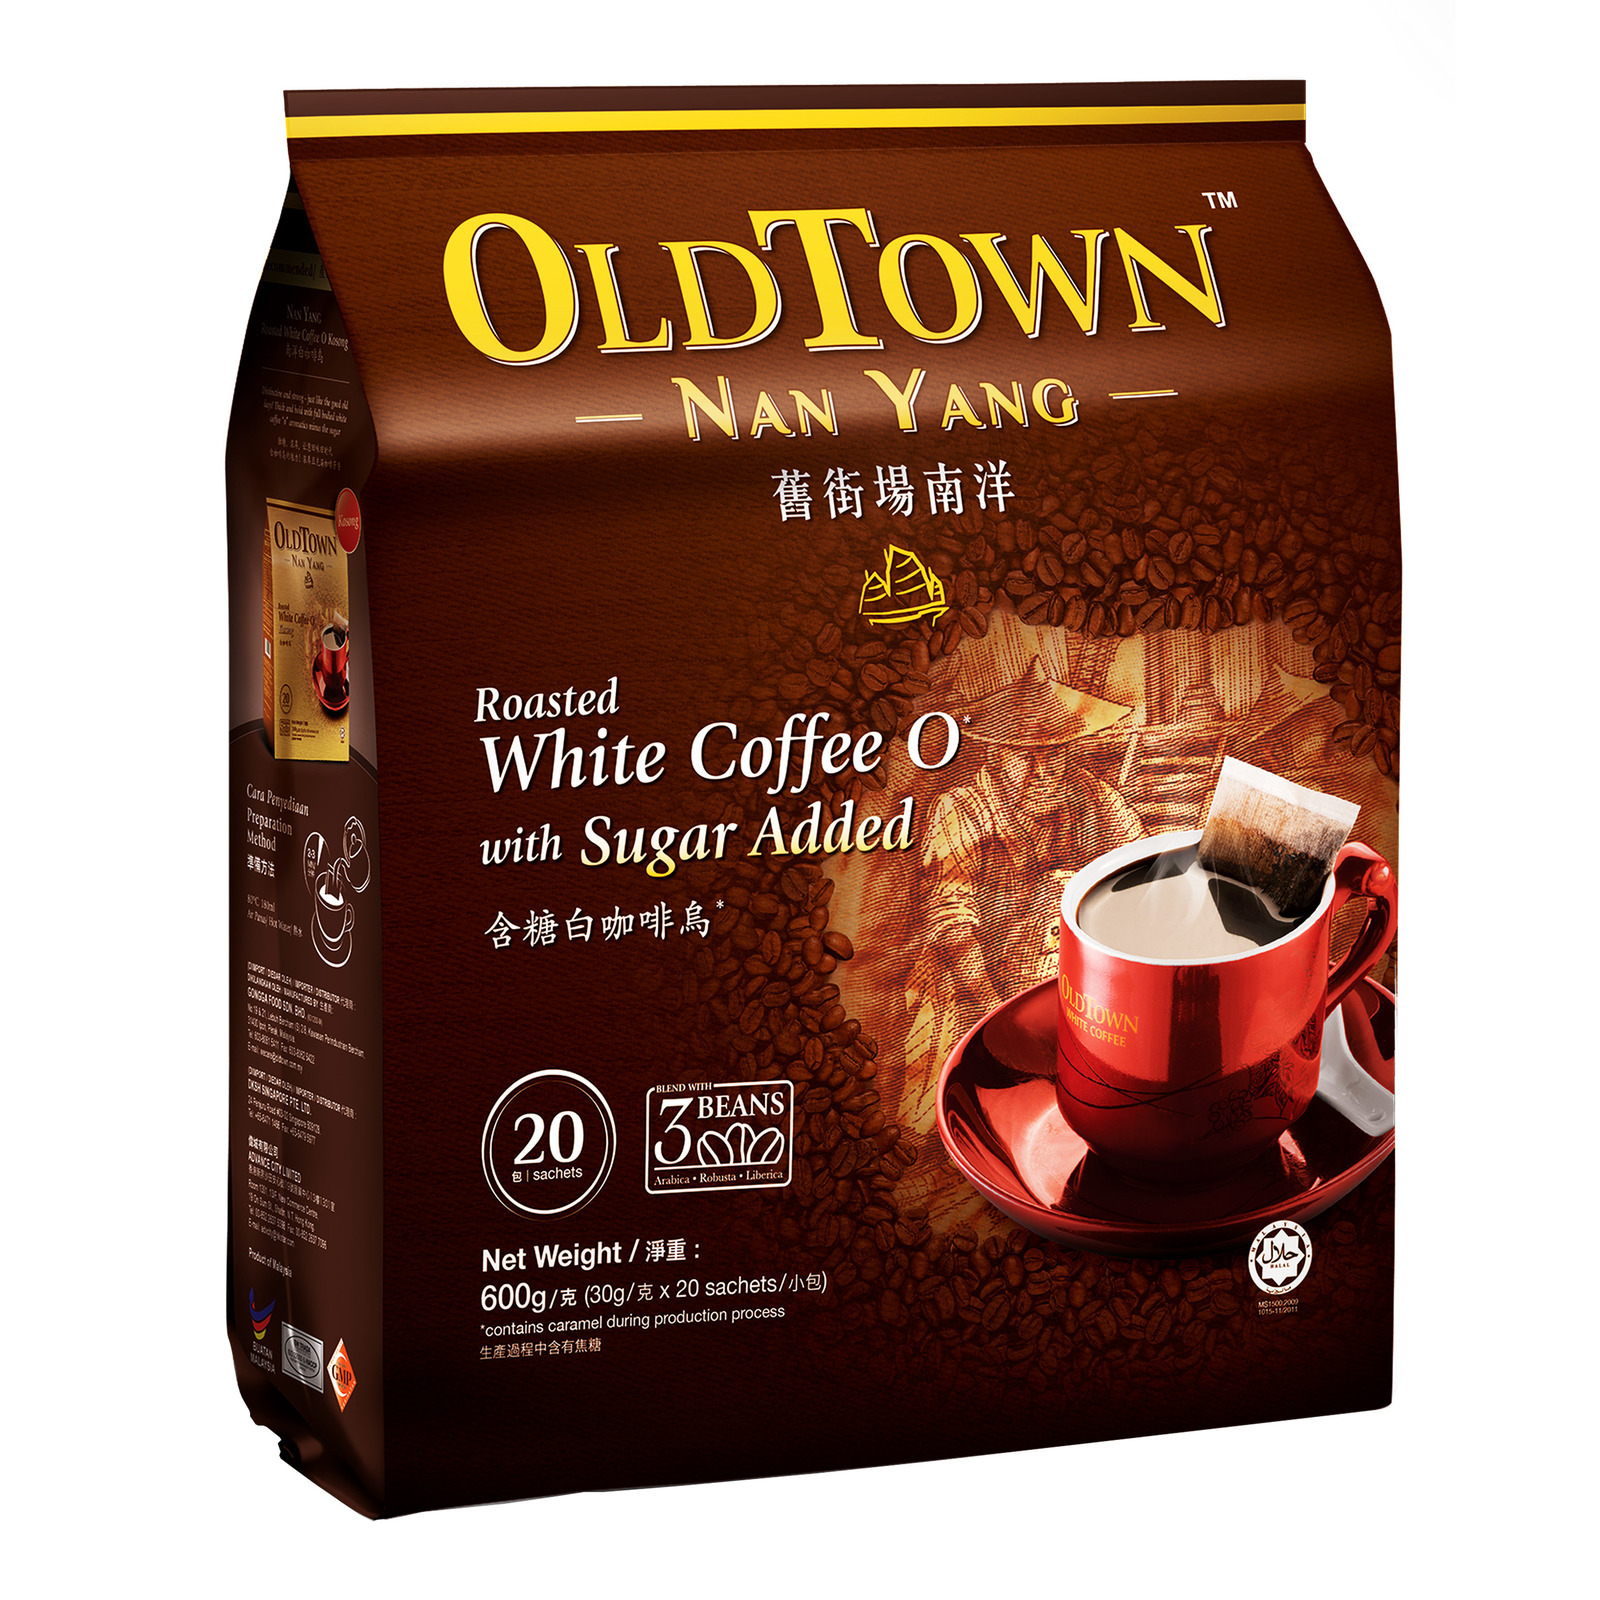 OLD TOWN Nan Yang White Coffee O with Sugar Added 20sX30g